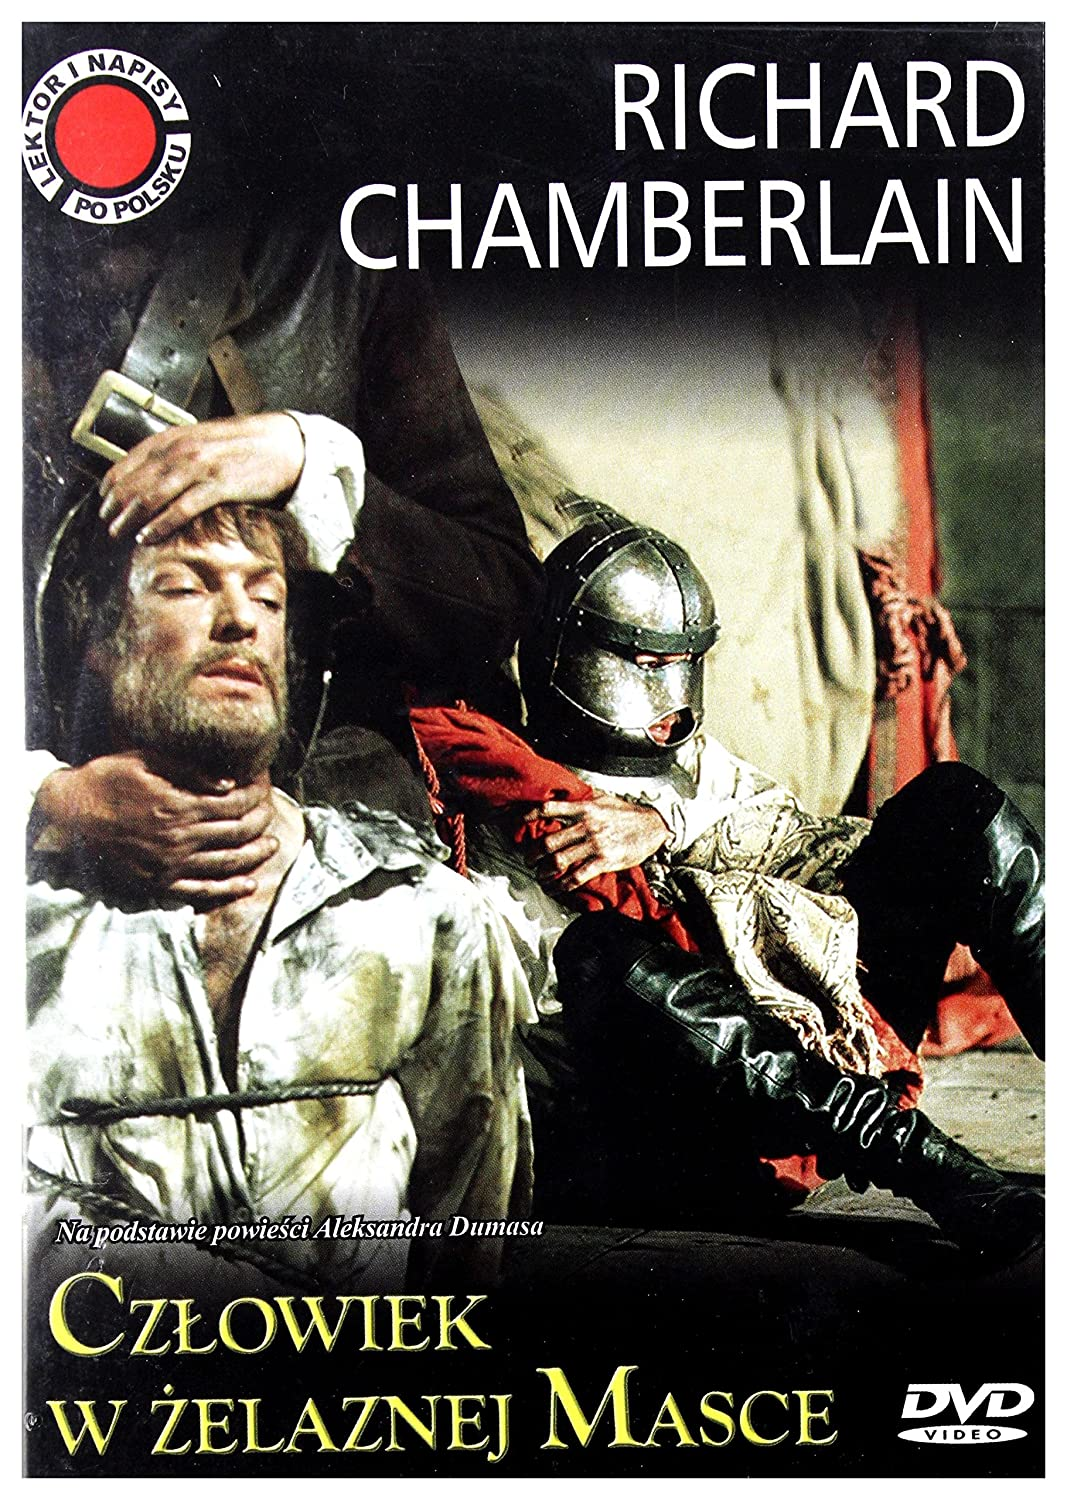 The Man in the Iron Mask DVD IMPORT No hay versión española: Amazon.es: Richard Chamberlain, Patrick McGoohan, Louis Jourdan, Jenny Agutter, Ian Holm, ...